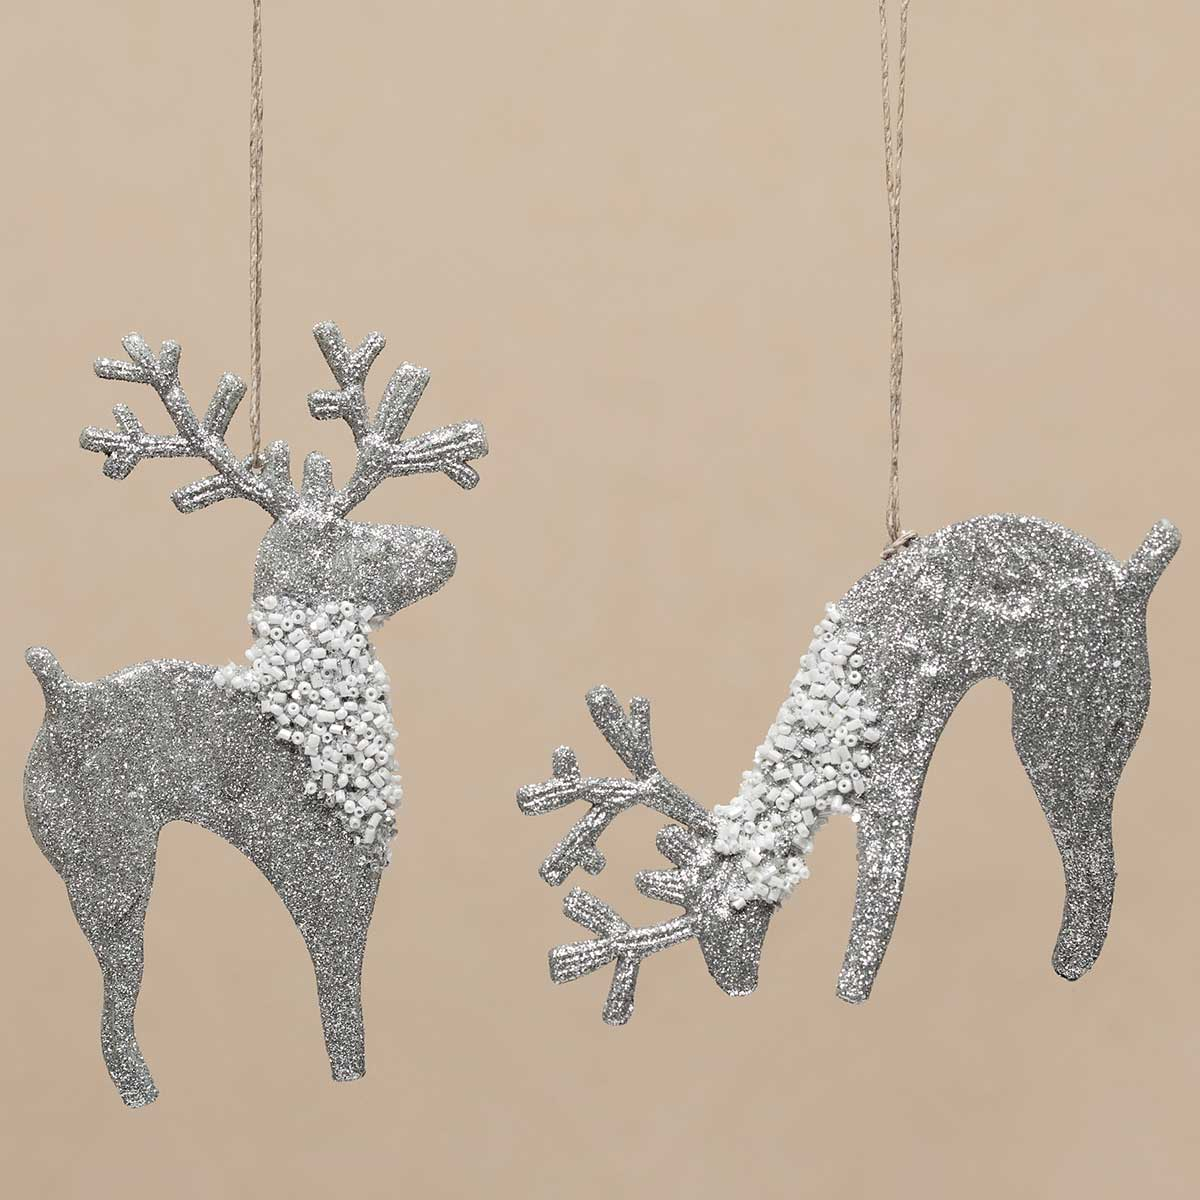 2 Piece Reindeer Ornament with Beads Set